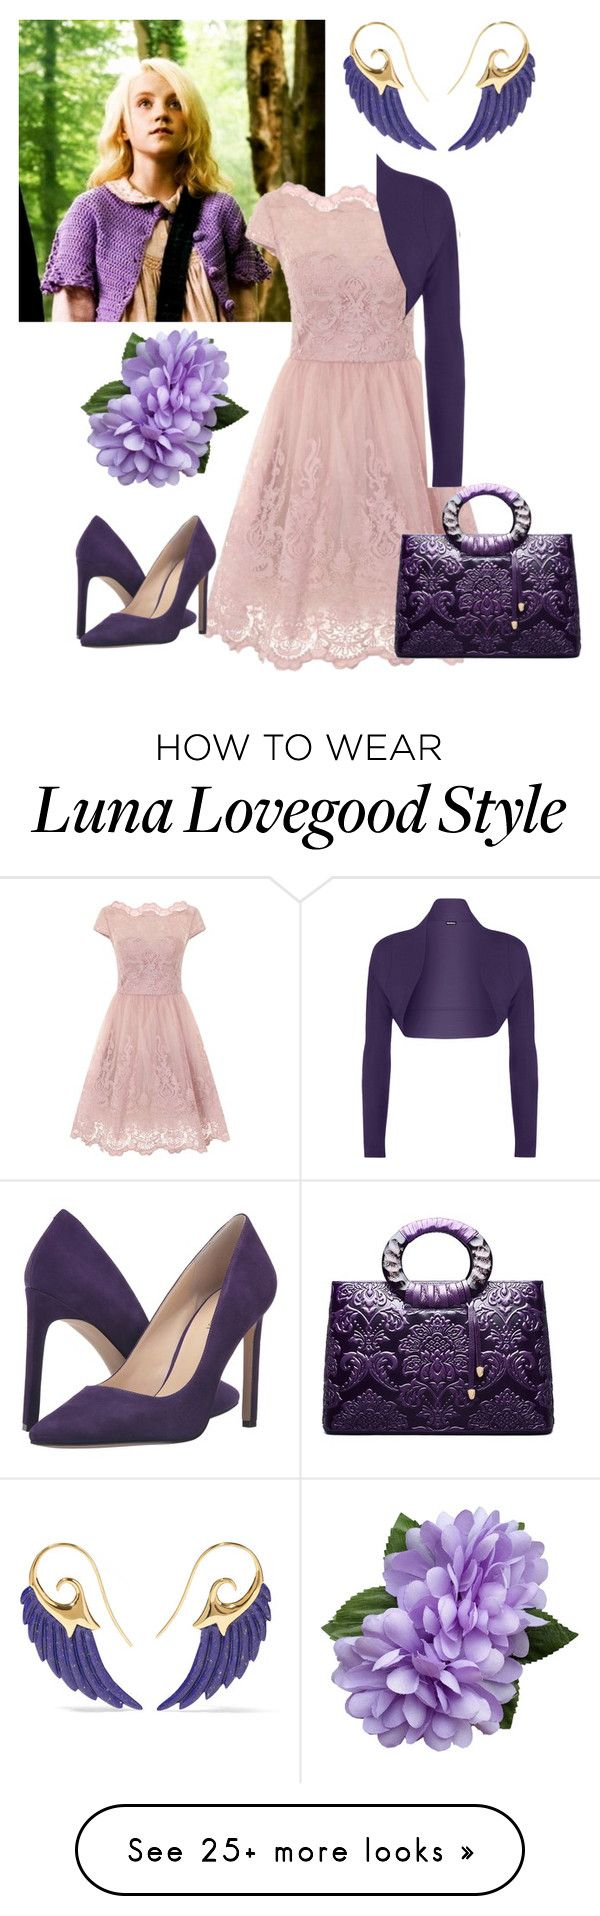 """""""Luna Lovegood"""" by diane-randle on Polyvore featuring Noor Fares, Chi Chi, WearAll and Nine West"""